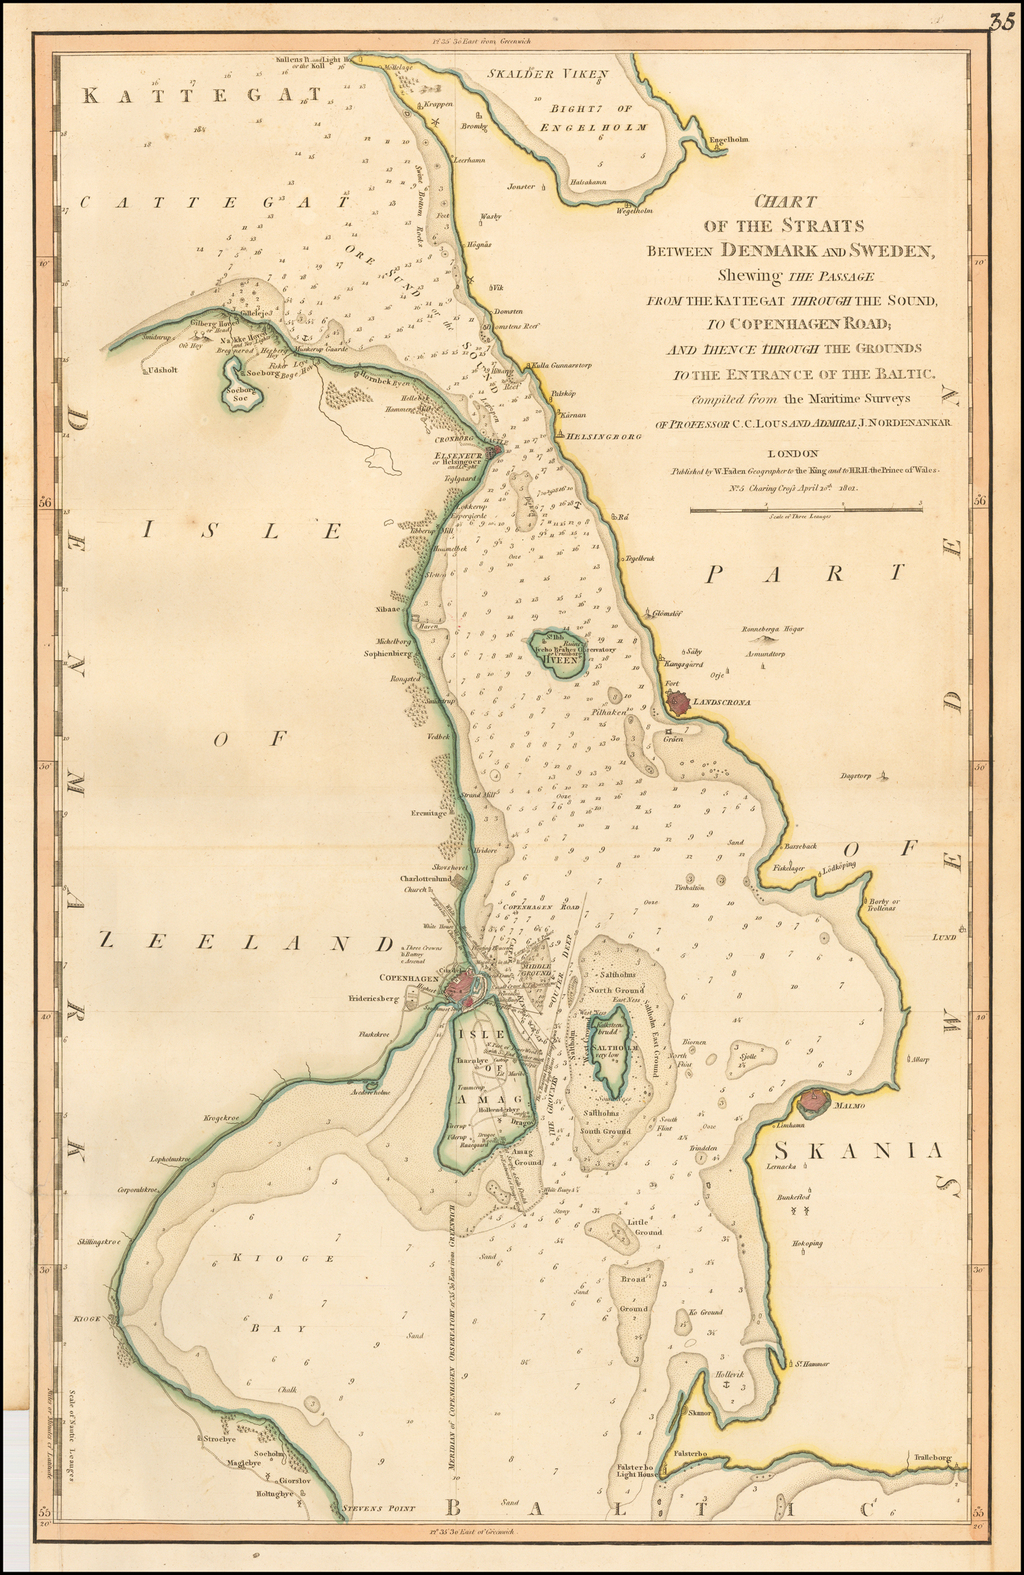 Chart of the Straits Between Denmark and Sweden, Shewing The Passage From the Kattegat Through the Sound,To Copenhagen Road . . . to the Entrance of the Baltic. Compiled from the Maritime Surveys of Professor C.C. Lous and Admiral J. Nordenakar By William Faden